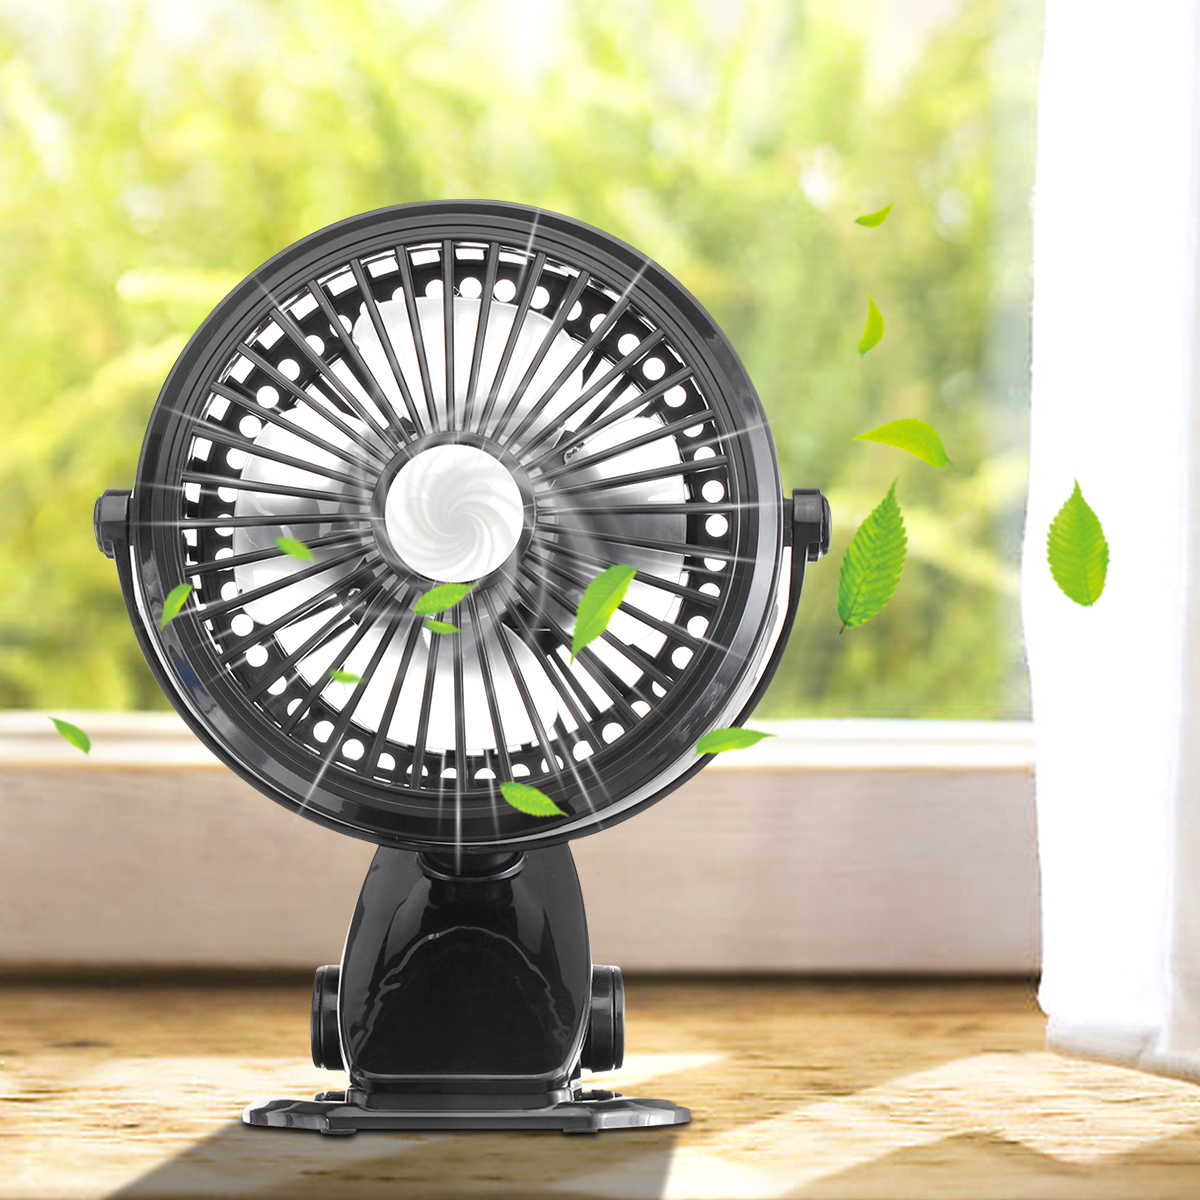 Rechargeable Battery Portable Mini Silent Clip Fan 4 Blades Bedside Clip Cooling Fans 3 Speeds Desktop USB Fan 360 RotationRechargeable Battery Portable Mini Silent Clip Fan 4 Blades Bedside Clip Cooling Fans 3 Speeds Desktop USB Fan 360 Rotation